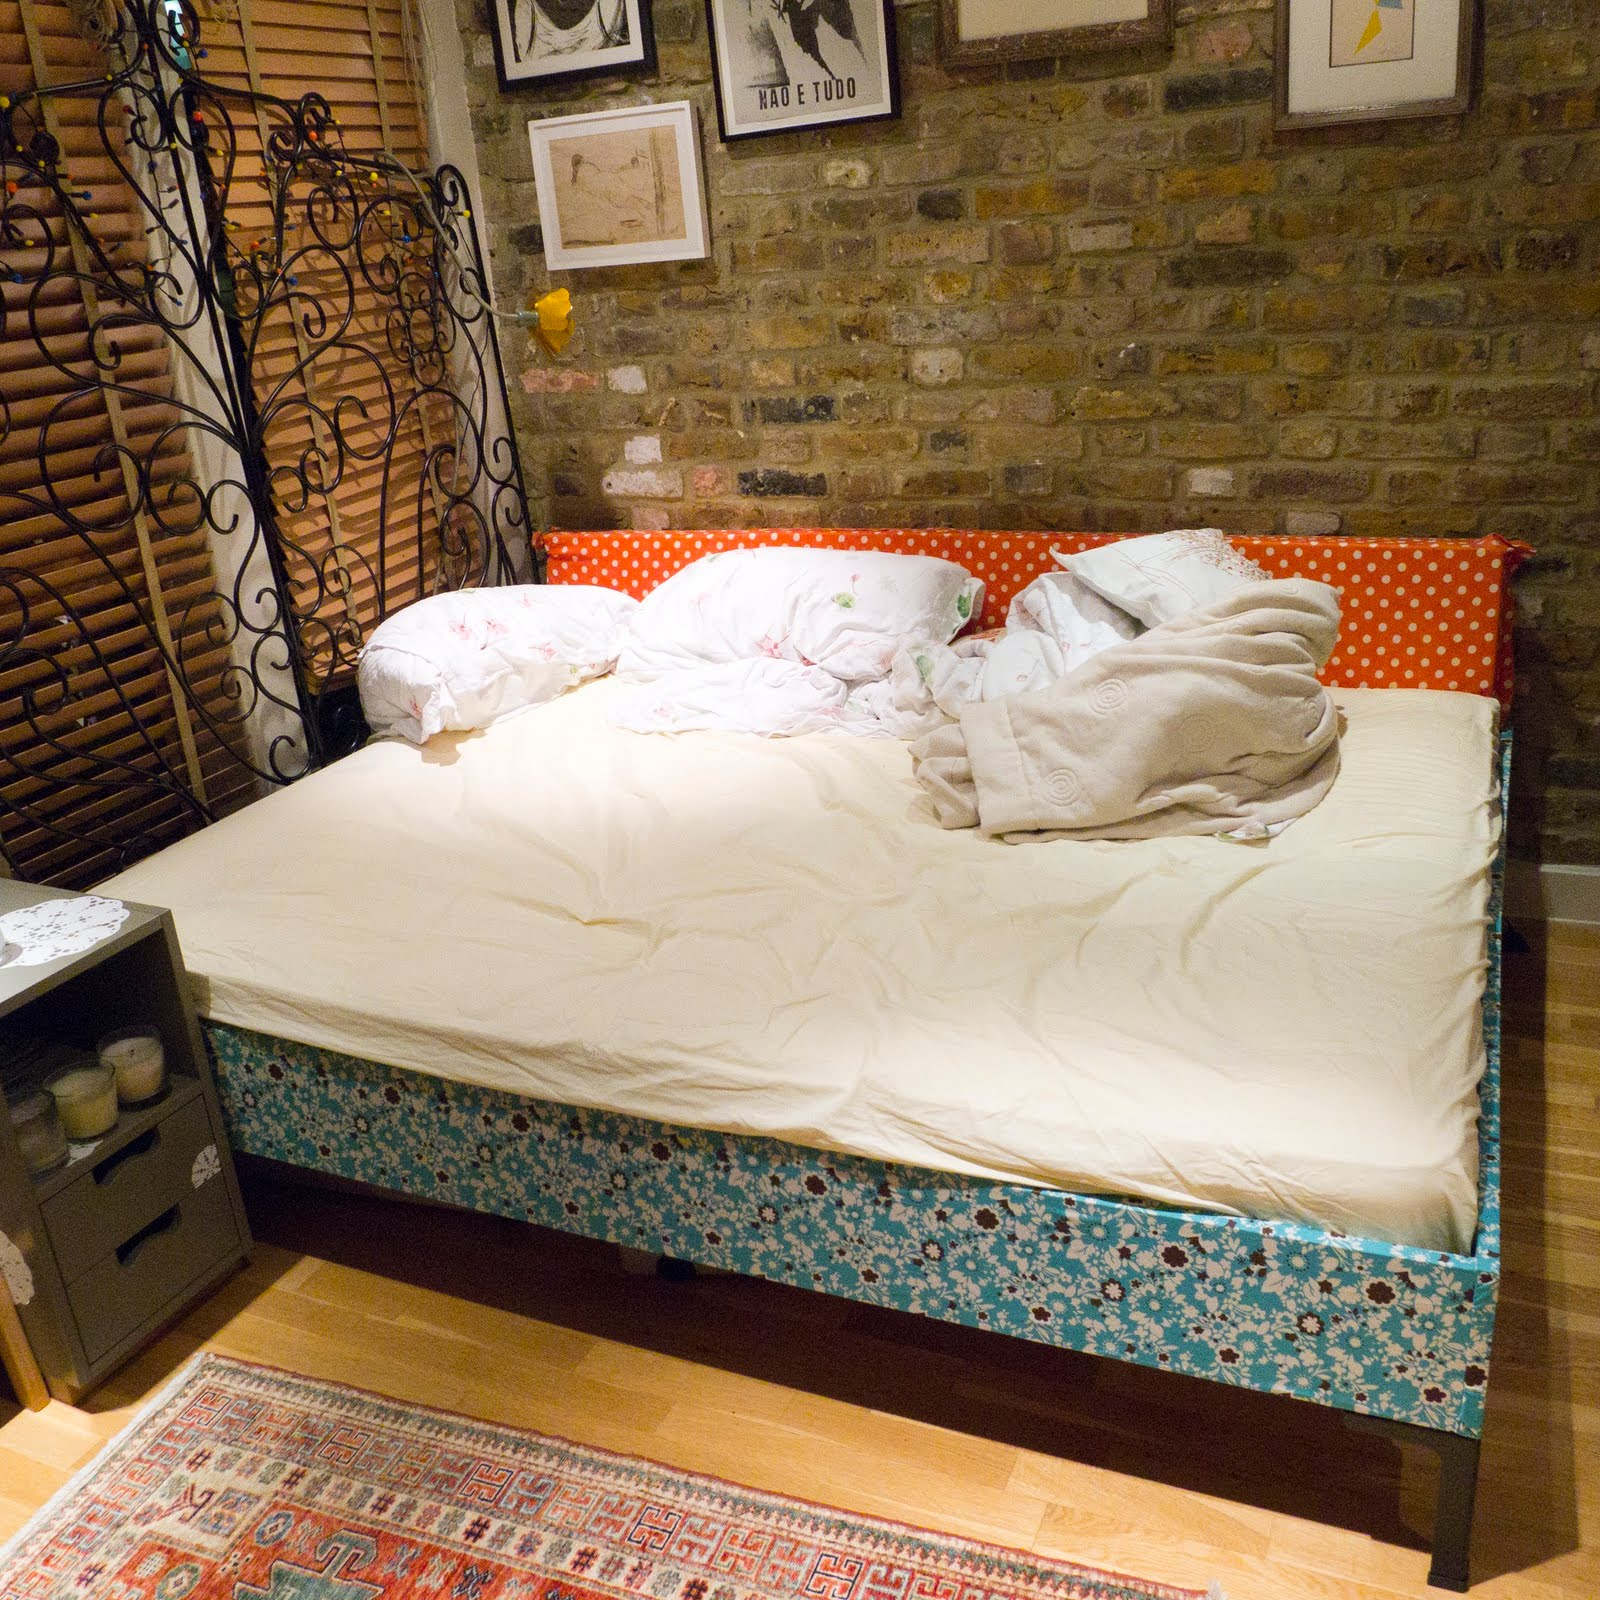 Ikea Full Bed Frame at Home and Interior Design Ideas